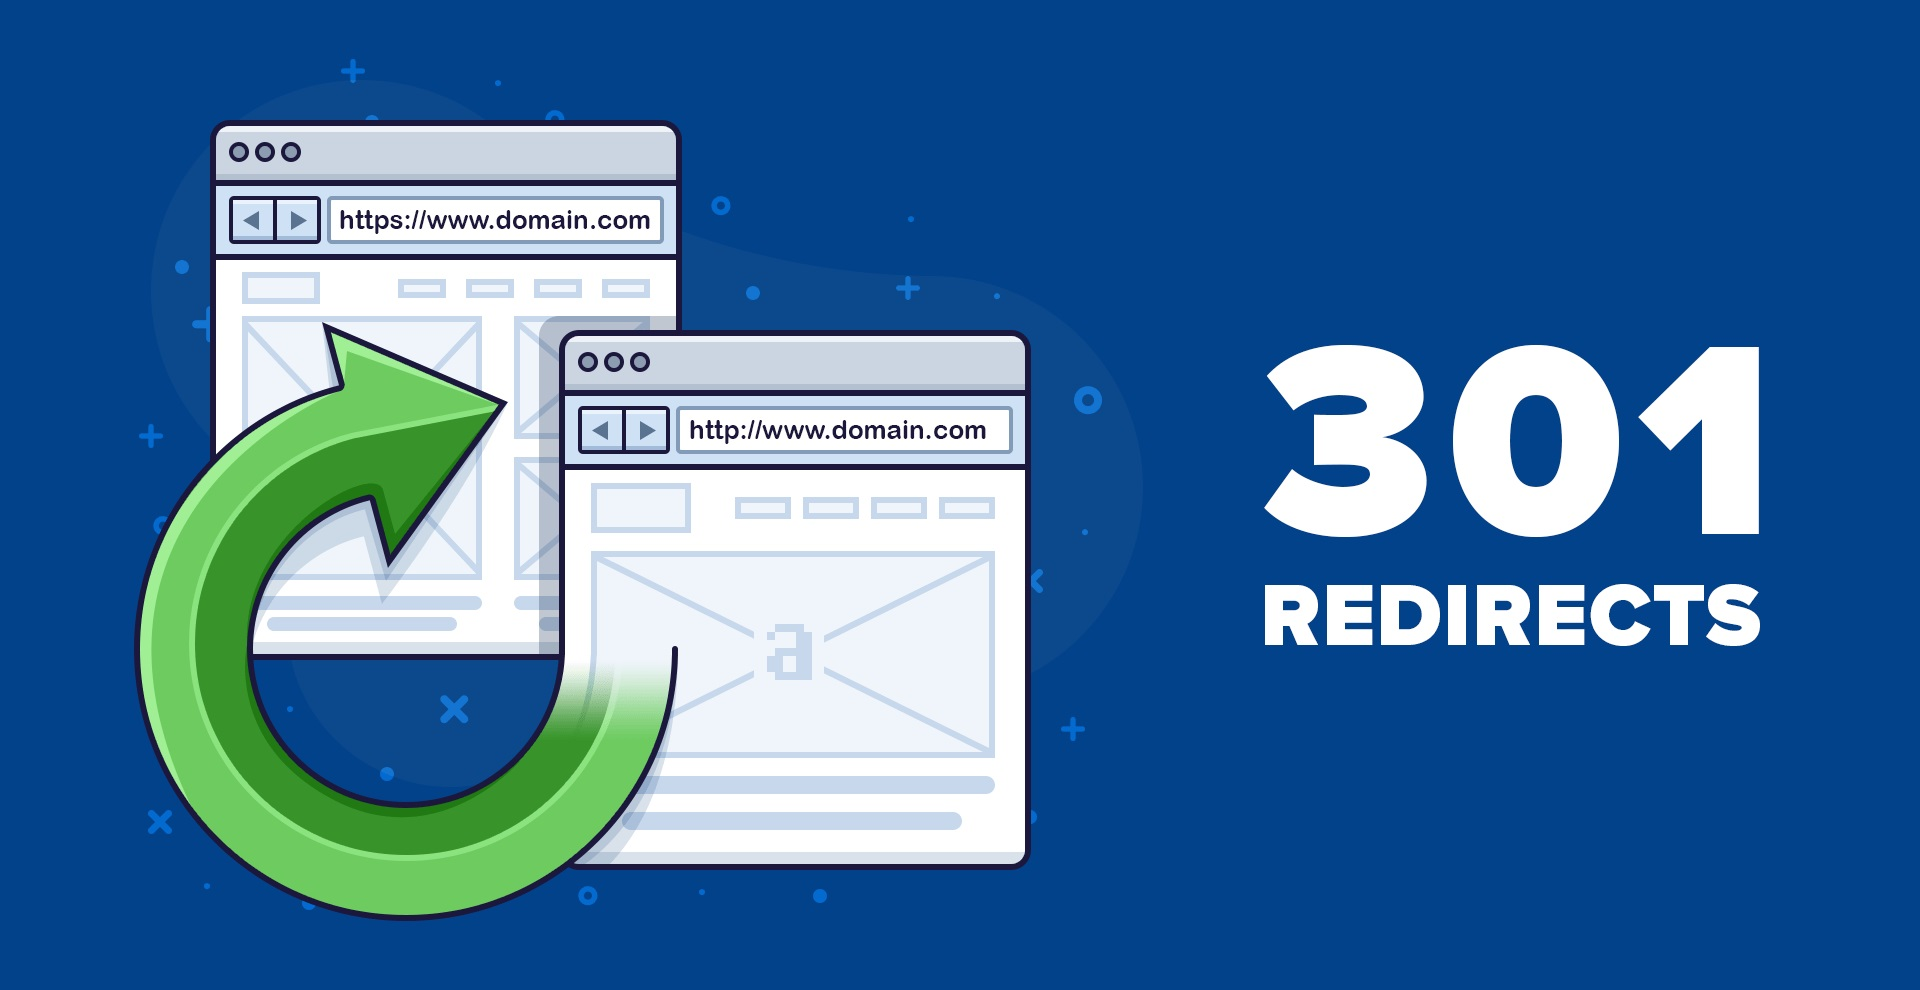 WordPress 301 Redirect Is Important – But It Can Be DamagingIf Not Done the Right Way